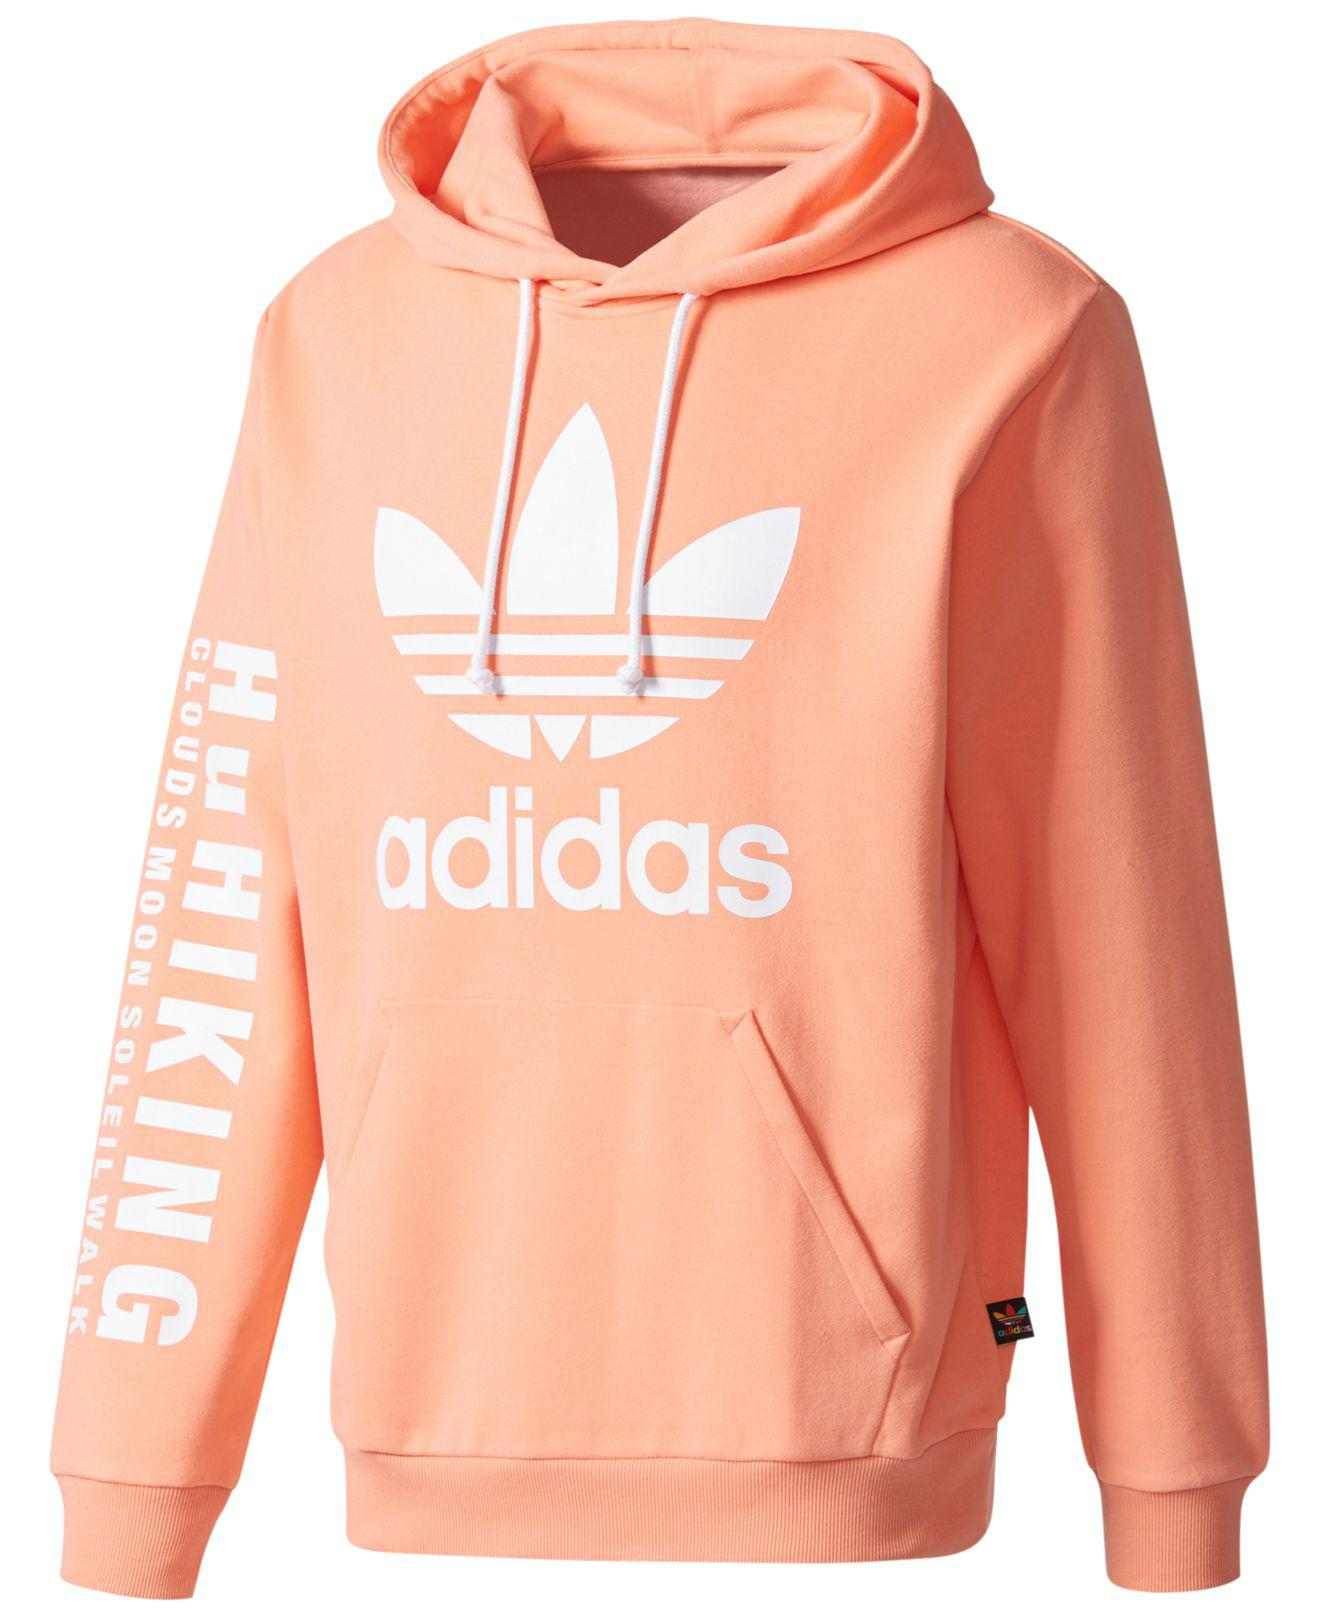 a57283ccd66 adidas Pharrell Williams Hu Hiking Logo Hoodie in Pink for Men - Lyst